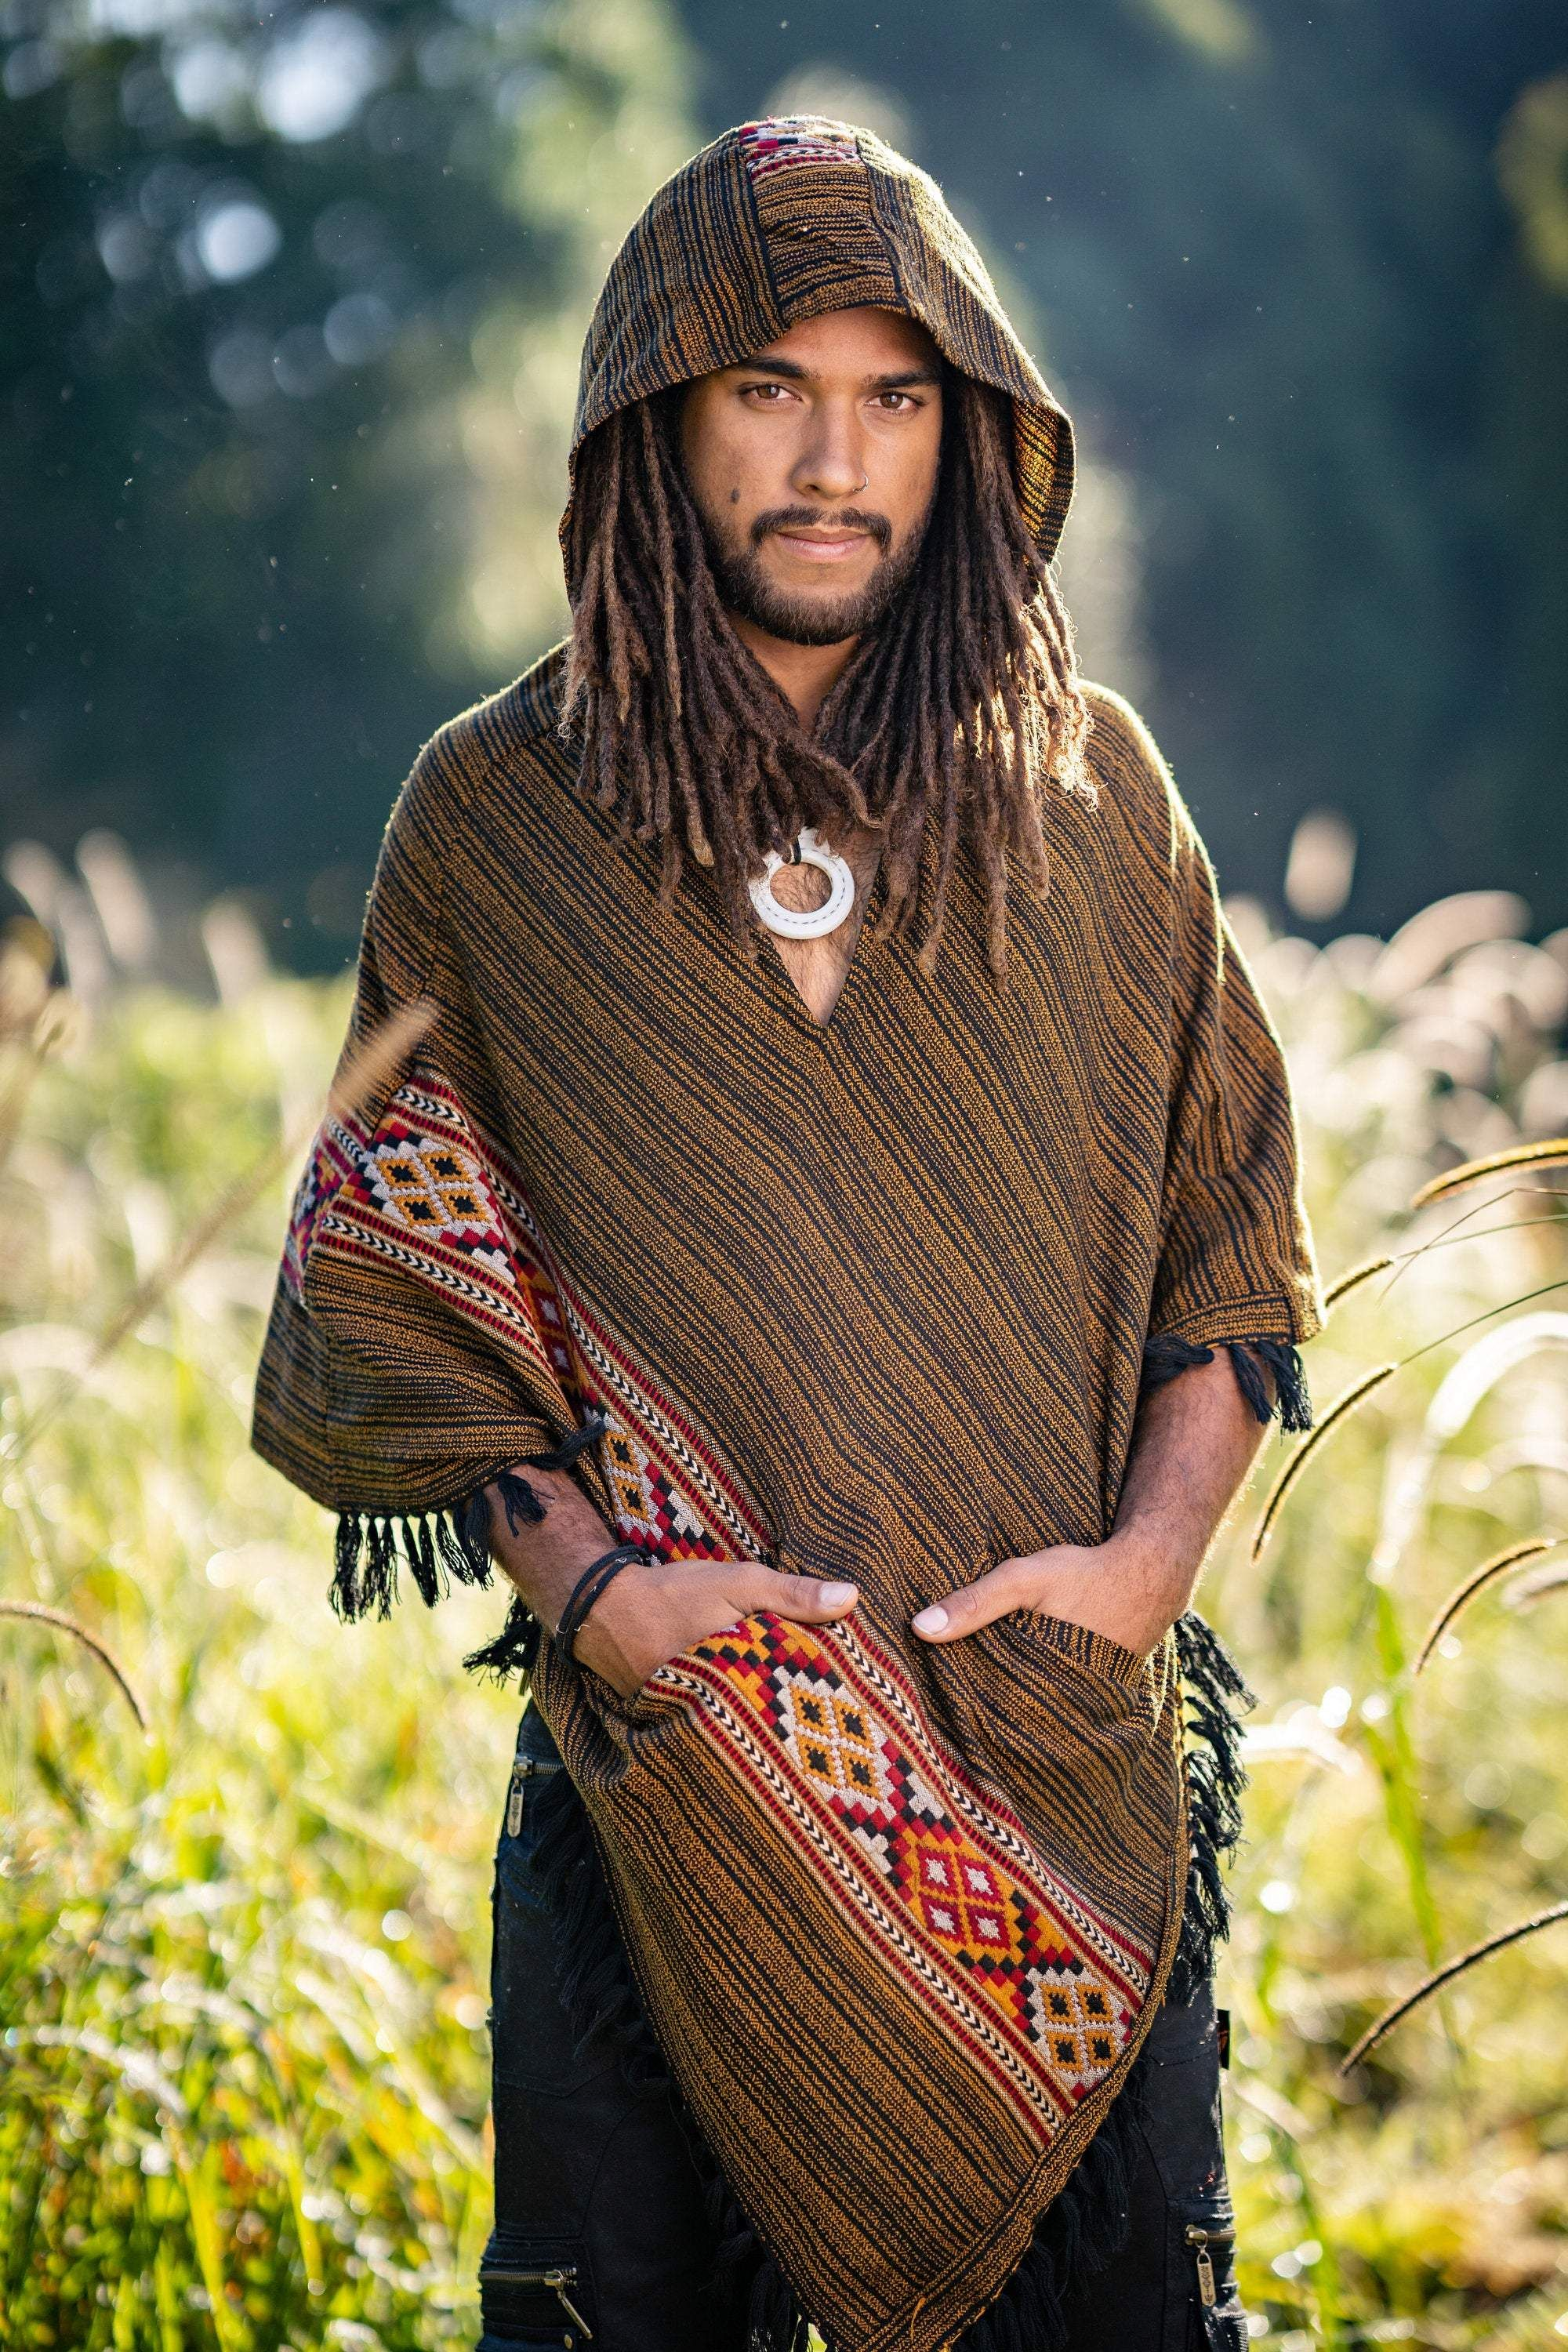 Hooded Poncho with Pockets Golden Black Cashmere Yak Wool Handmade Celtic Embroidery Gypsy Boho Primitive Festival Rave Mexican AJJAYA Mens